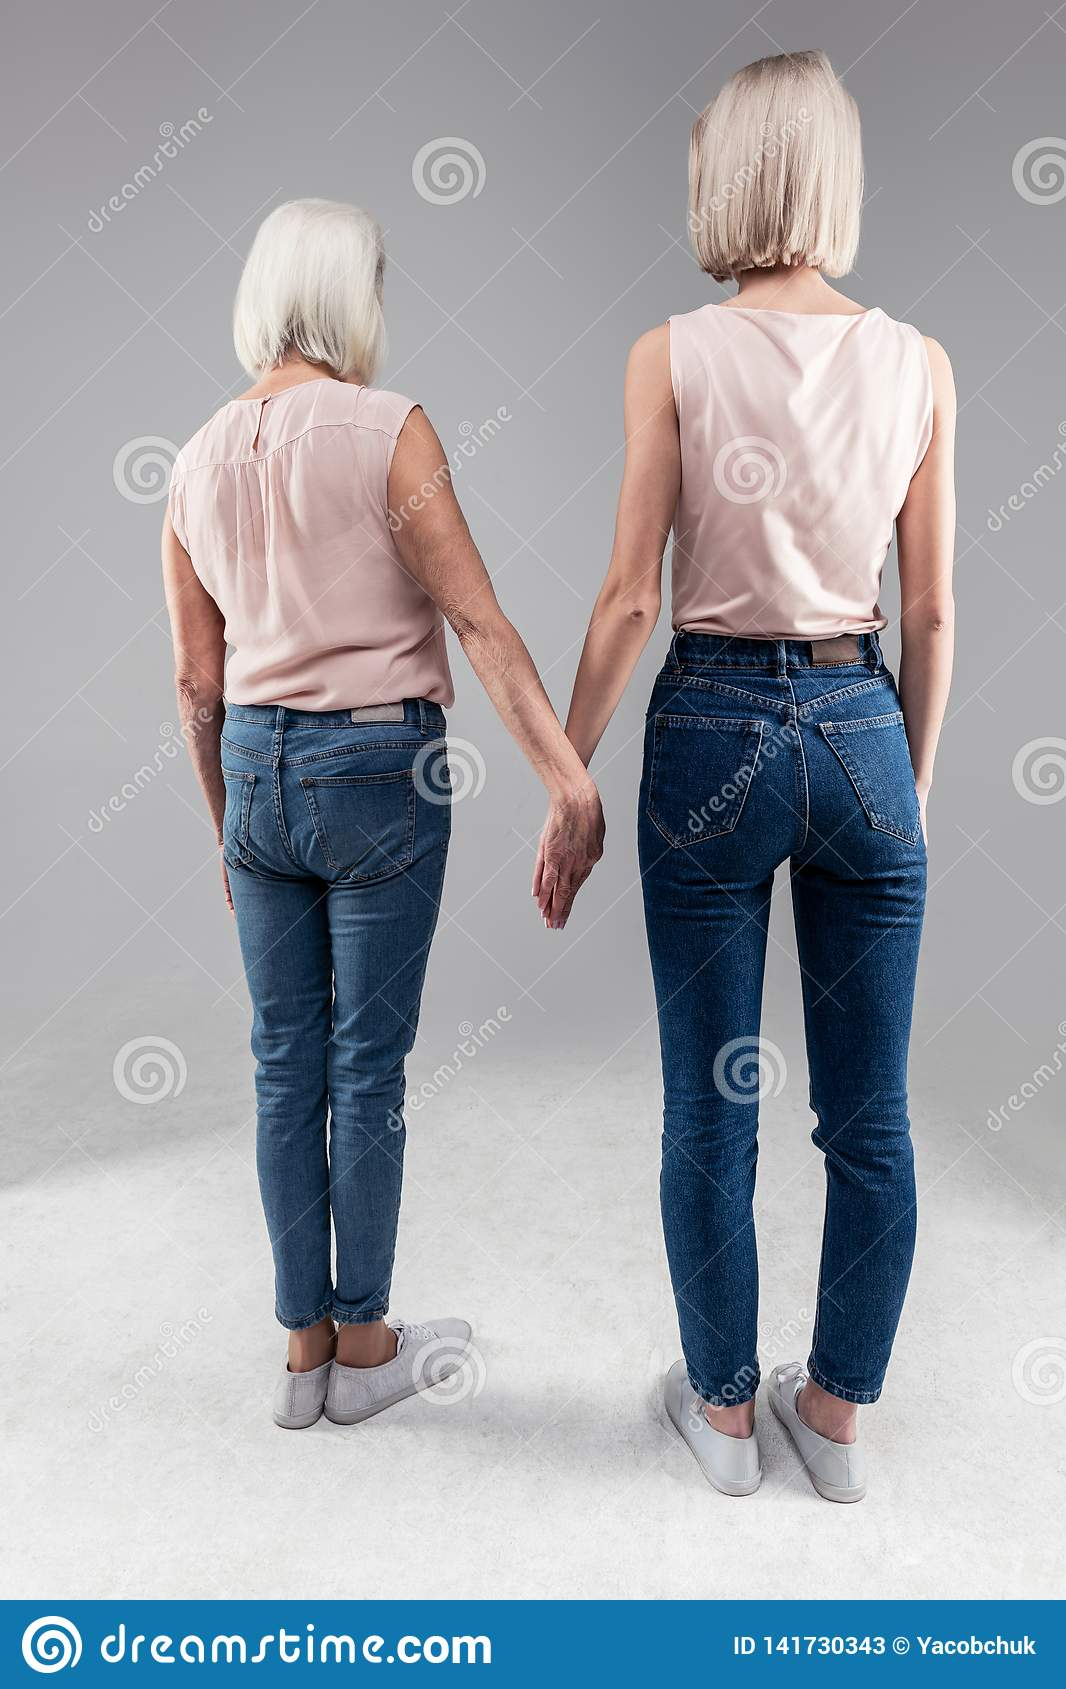 Blonde short-haired girls standing with her old mother and holding her hand